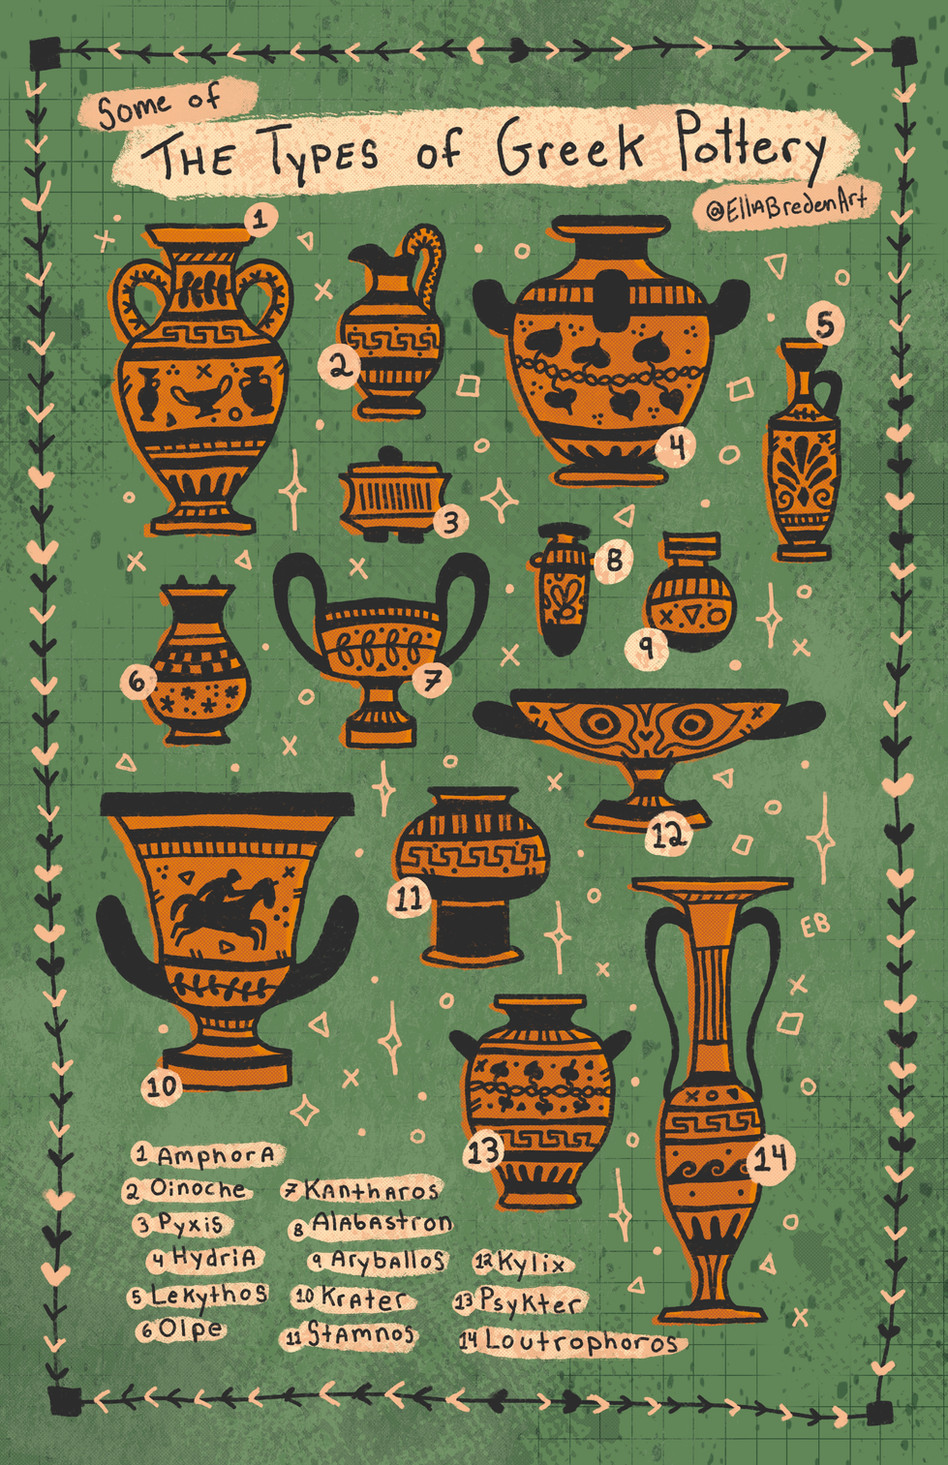 (Some of) The Types of Greek Pottery